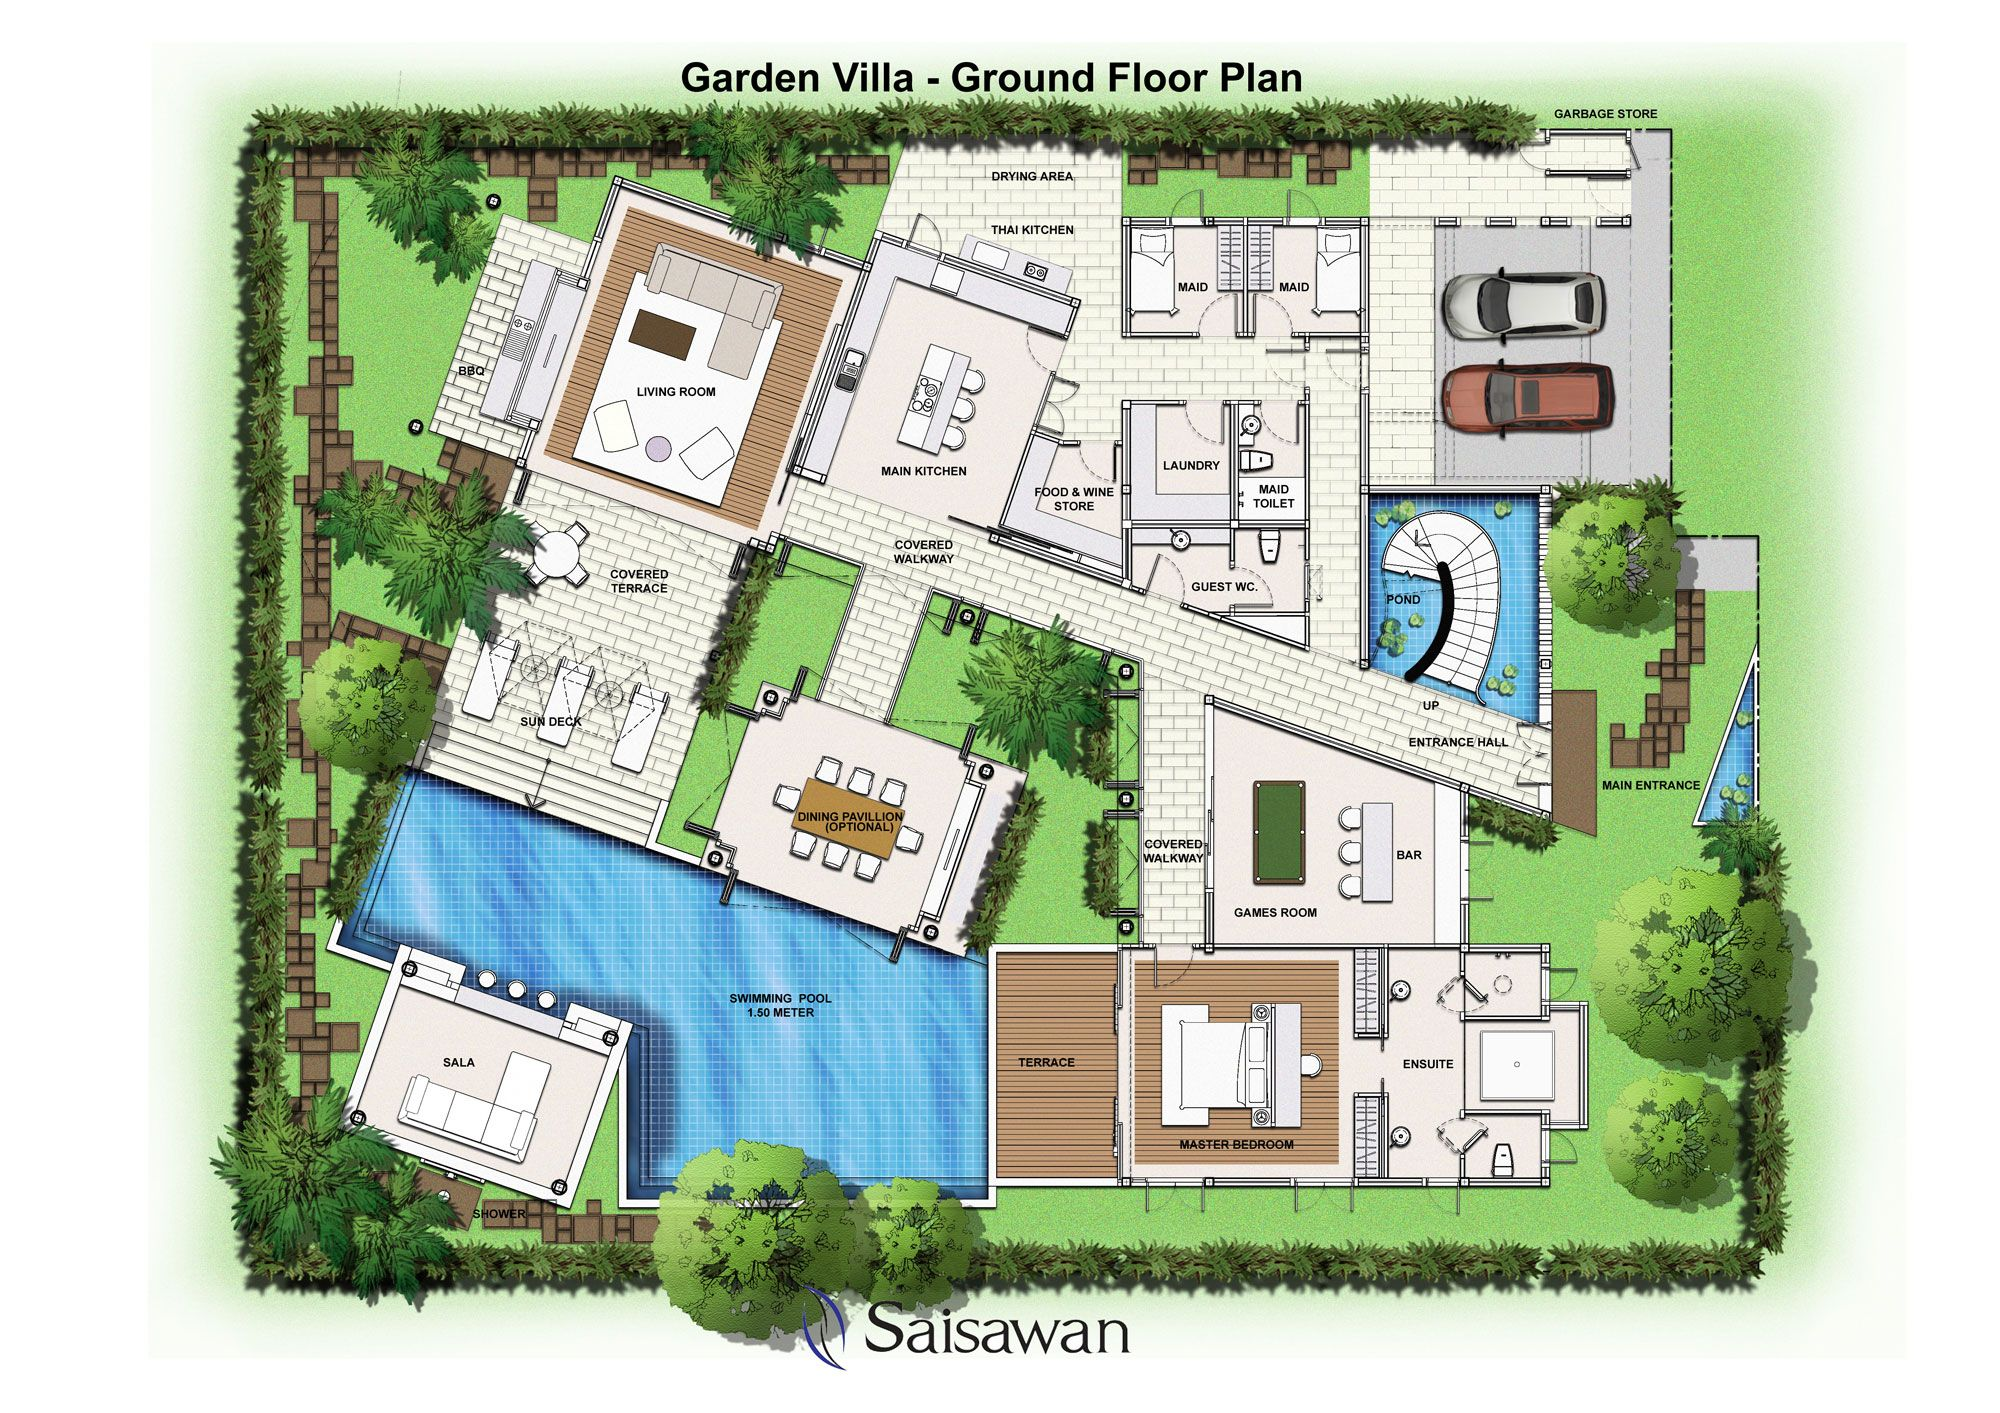 Saisawan garden villas ground floor plan house plans for Create a garden plan